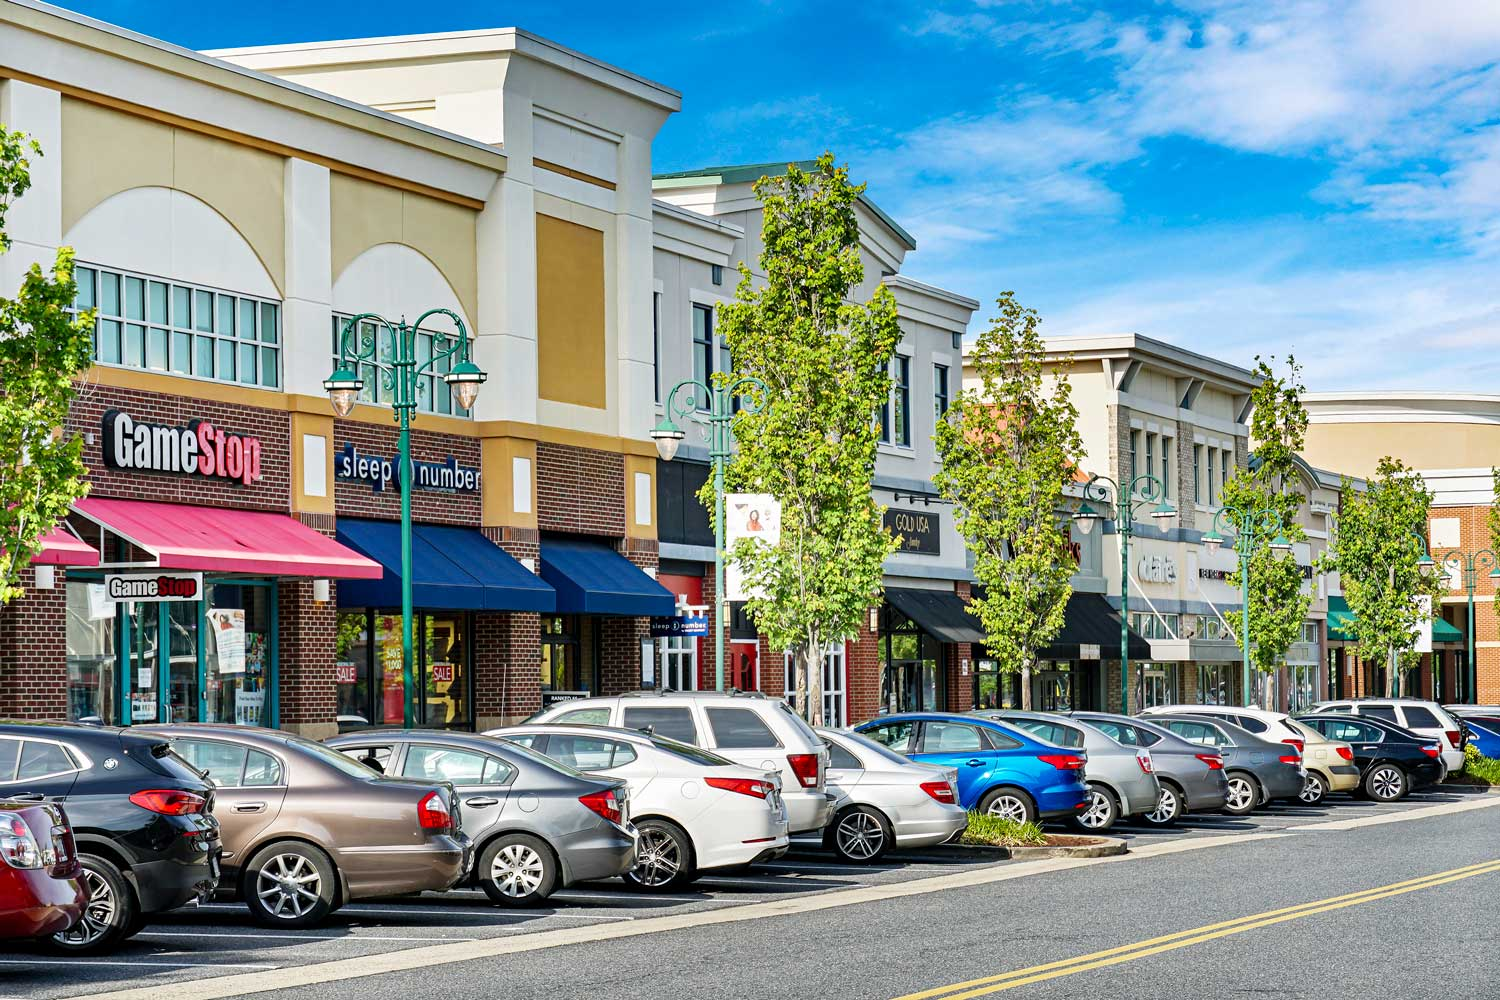 Bowie Town Center is 15 minutes from Columbia Park Apartments in Landover, MD